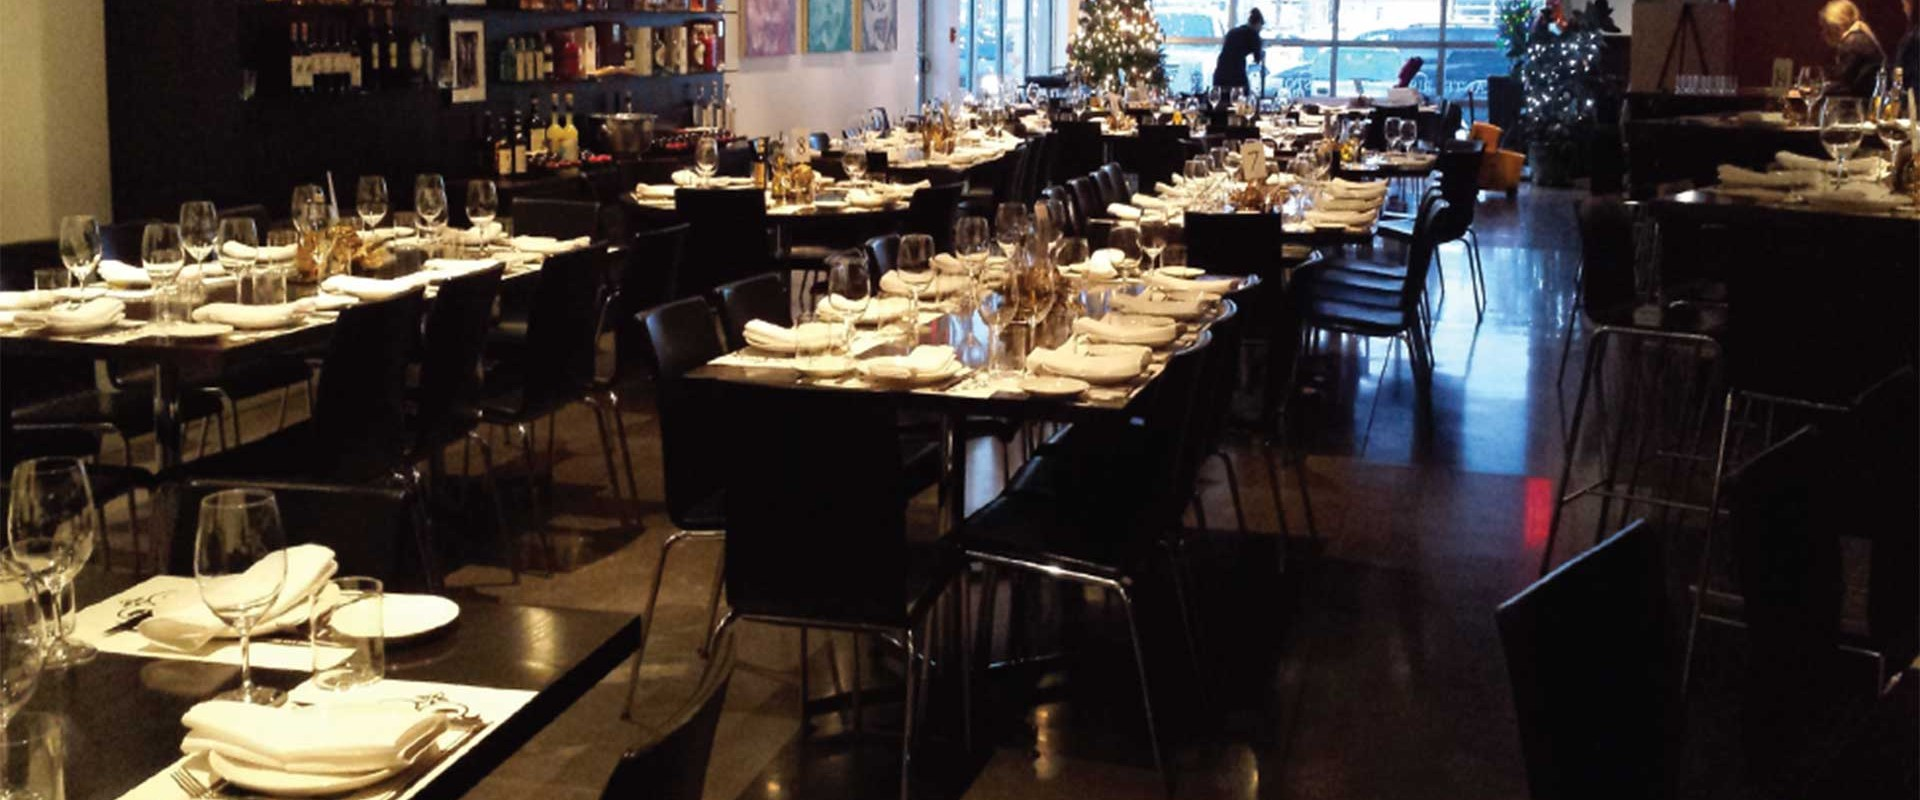 Events Private Dining 2 Banner1 En